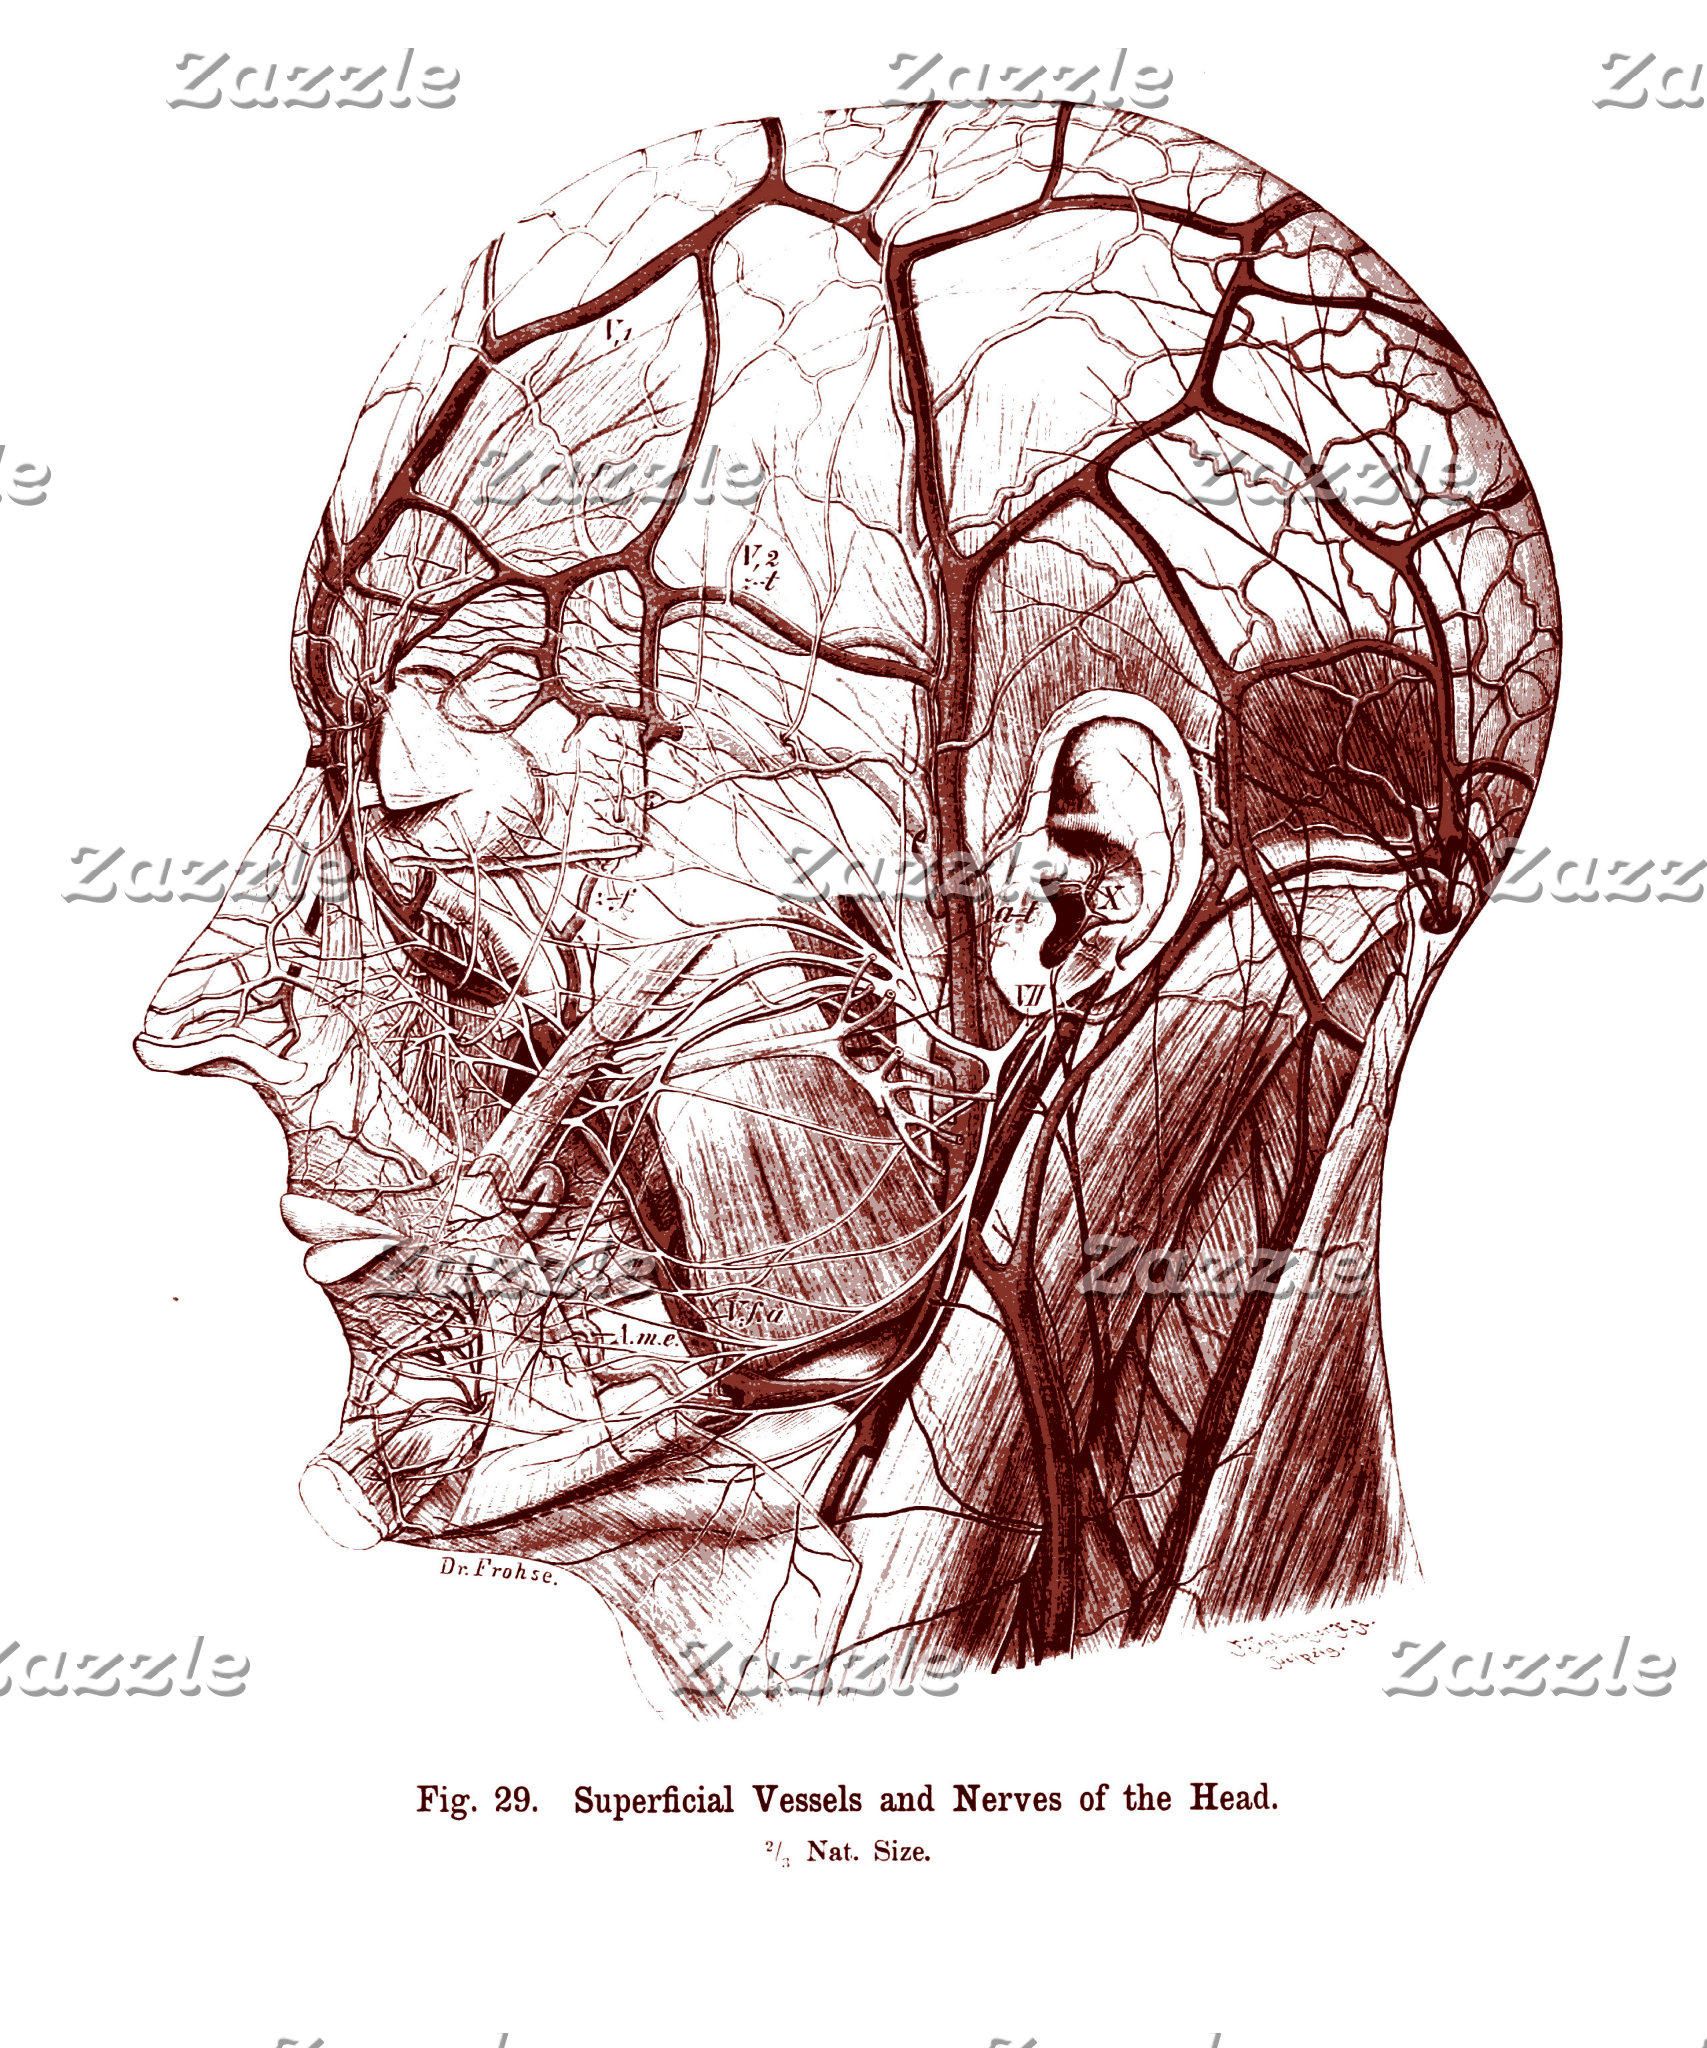 Superficial Vessels and Nerves of the Human Head